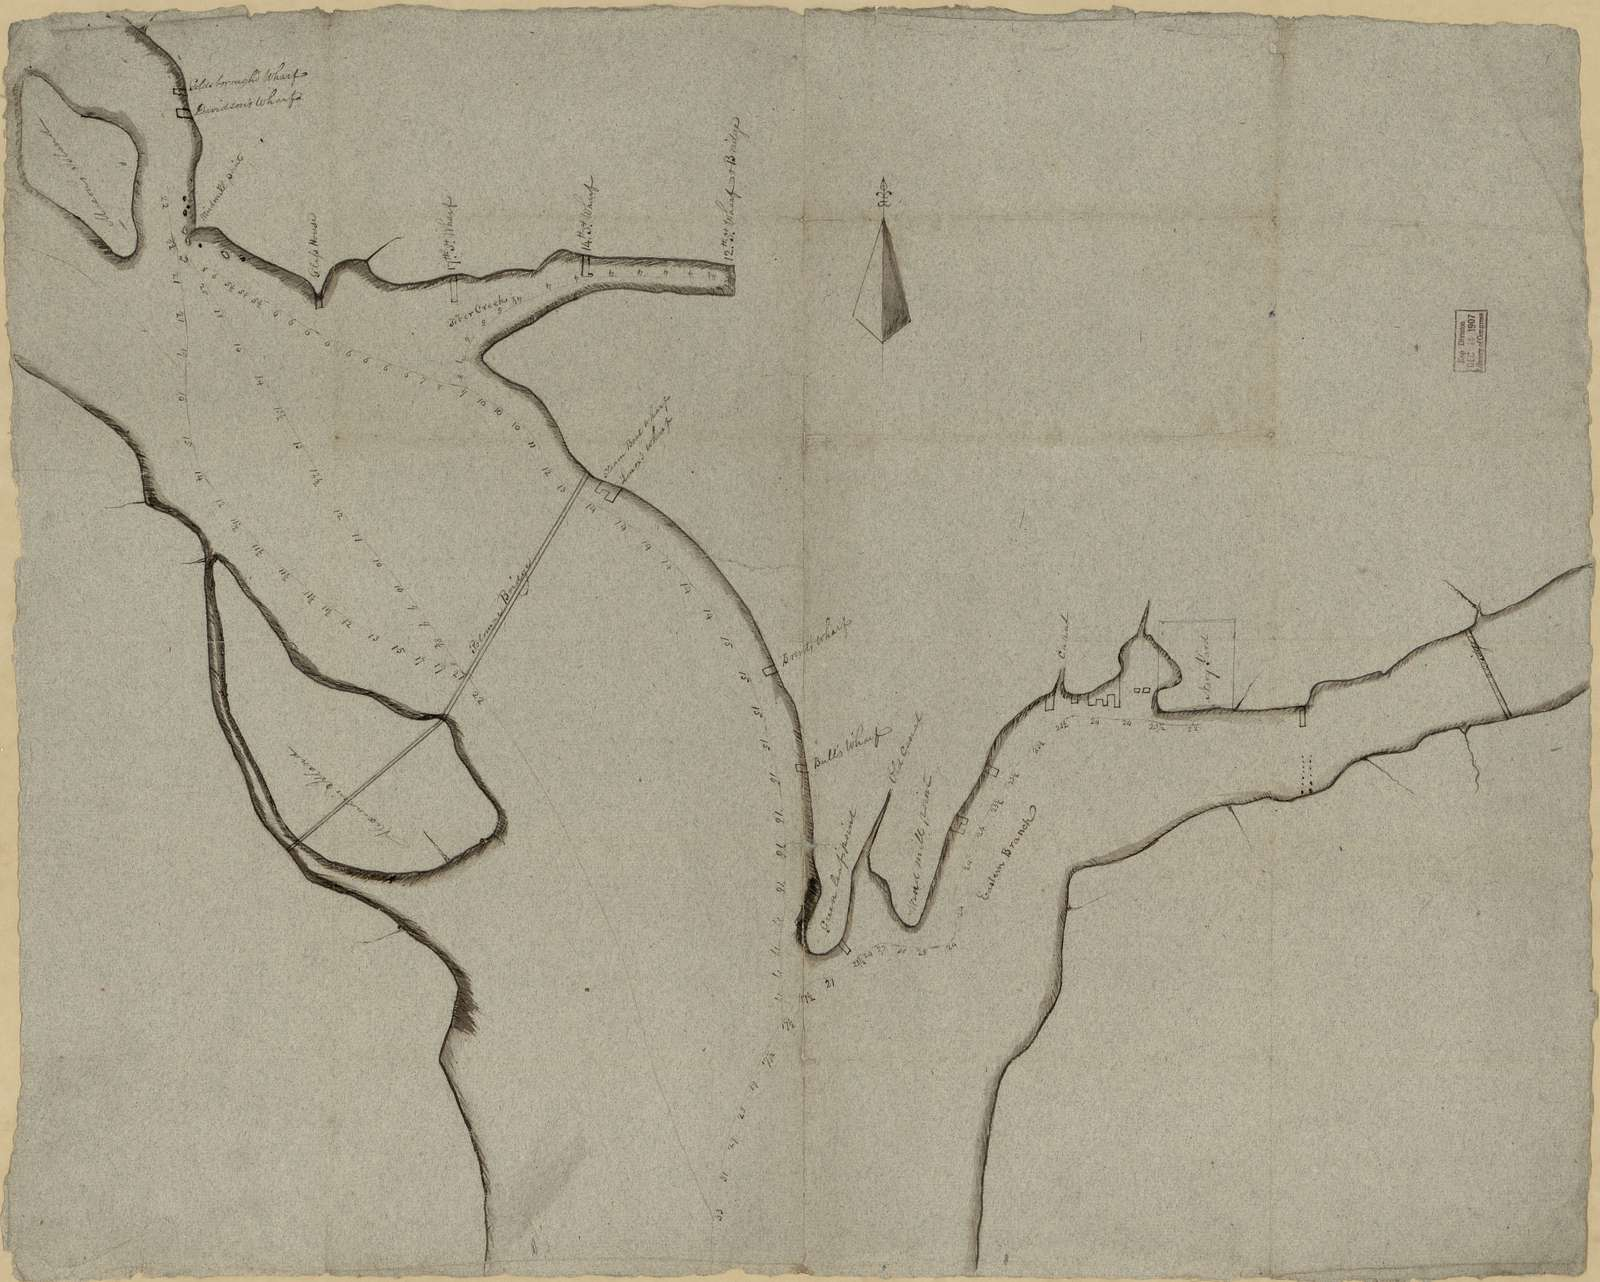 [Manuscript sketch of the Potomac River and Eastern Branch bounding the city of Washington].